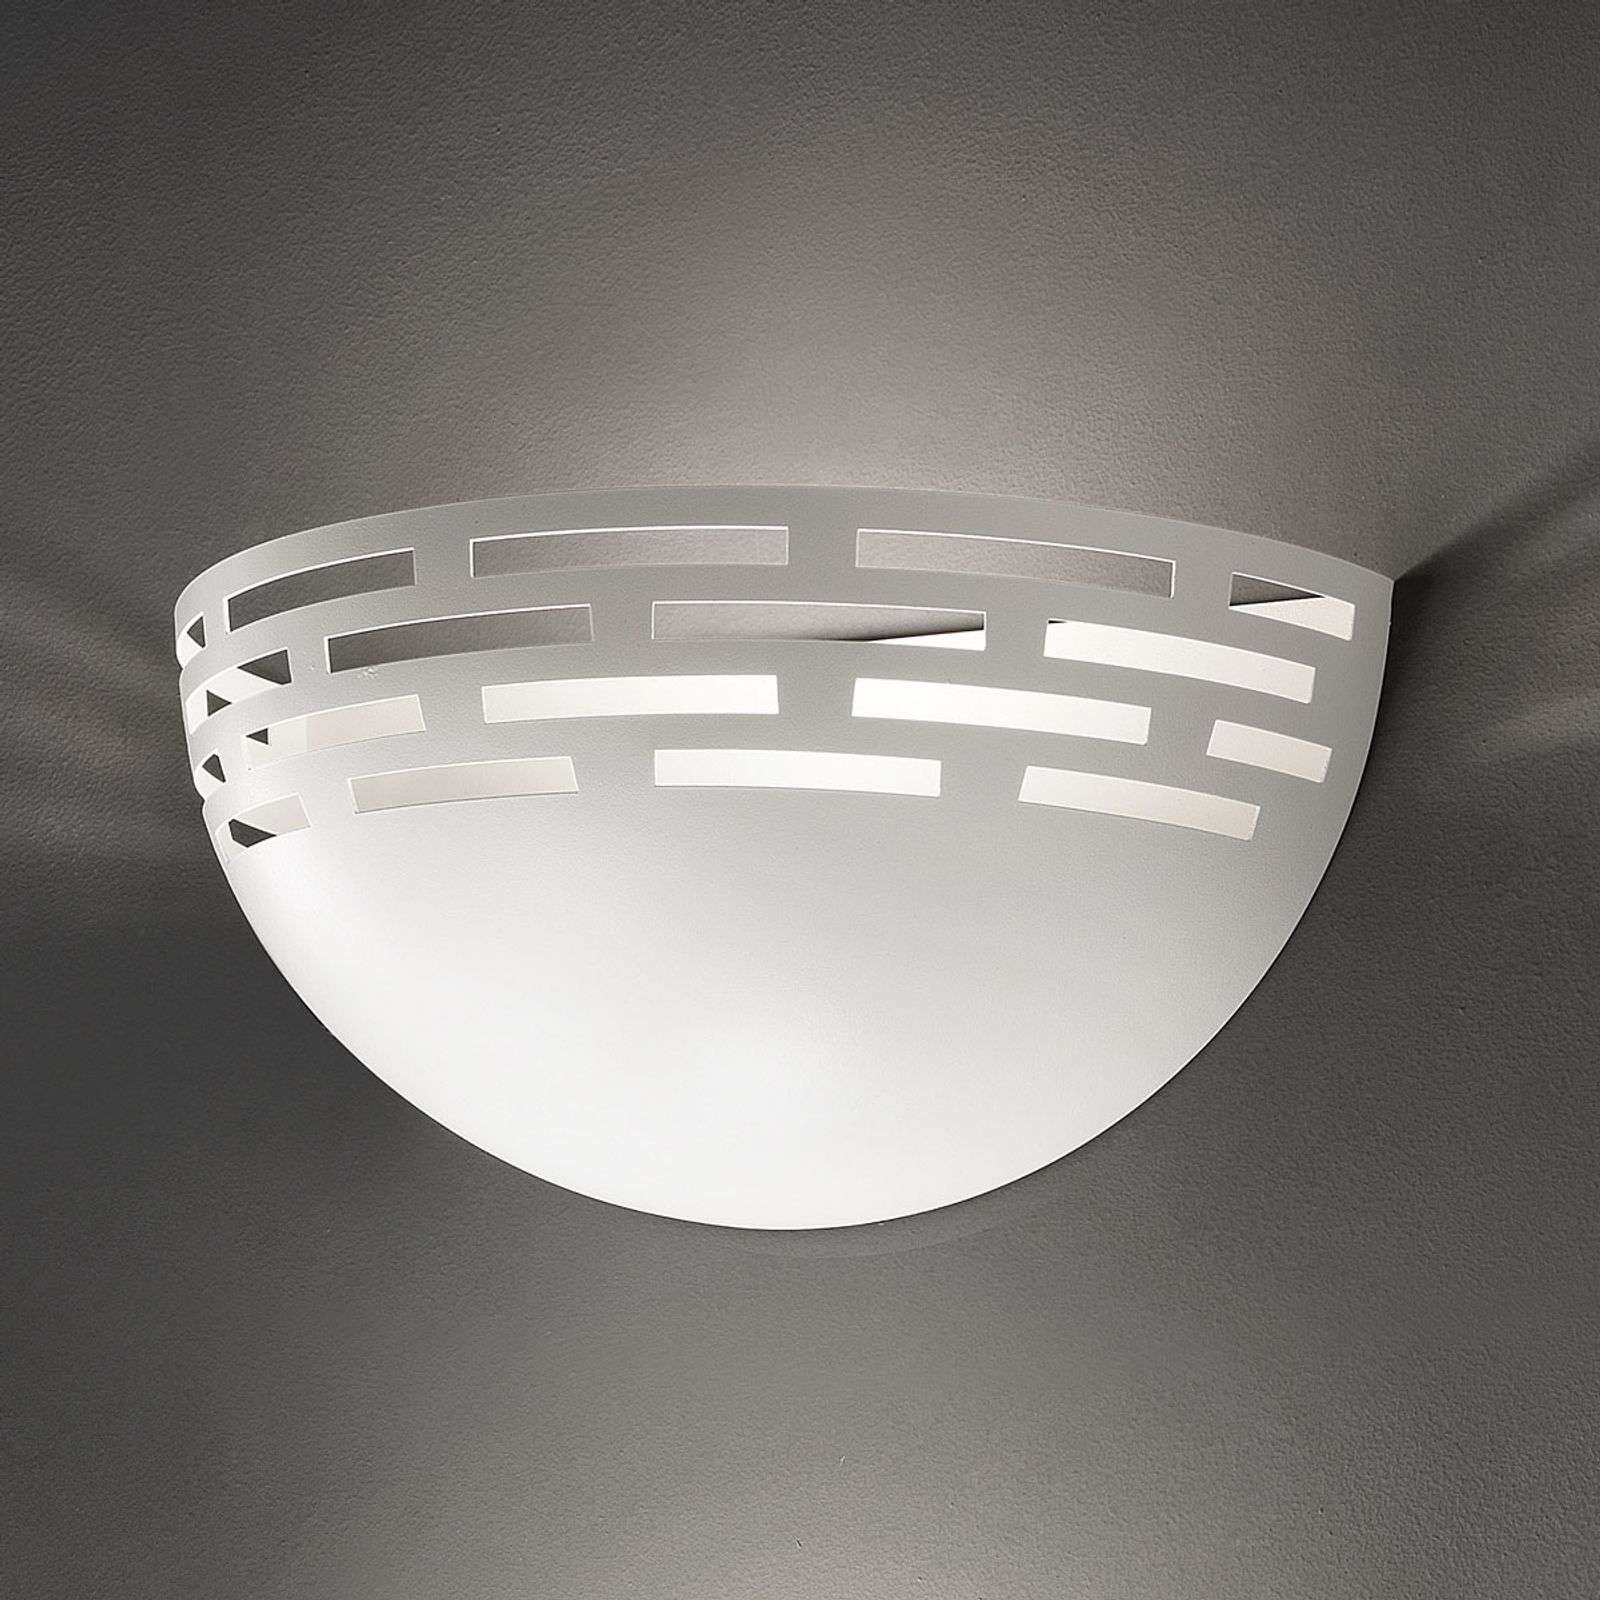 Belle applique LED Greka en blanc